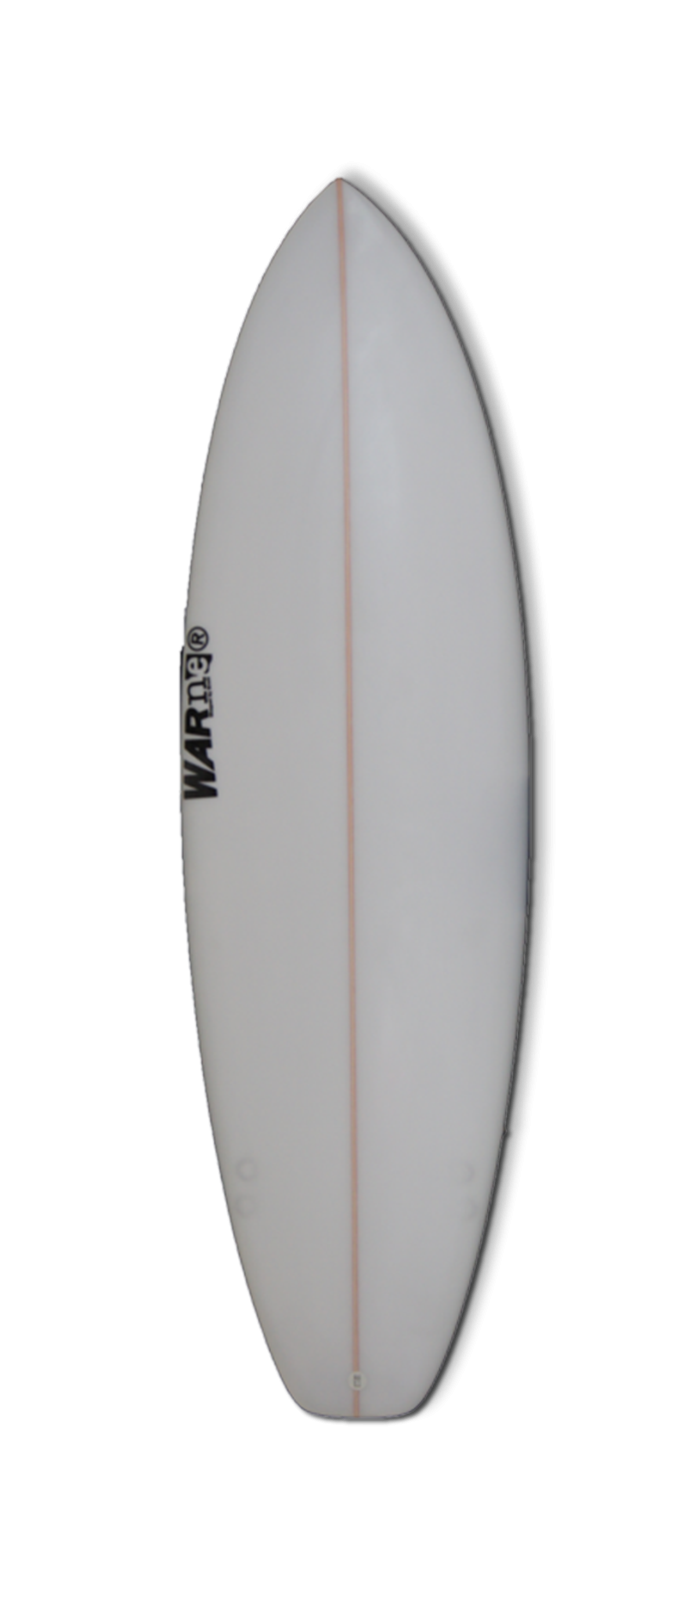 SEA BOP surfboard model bottom